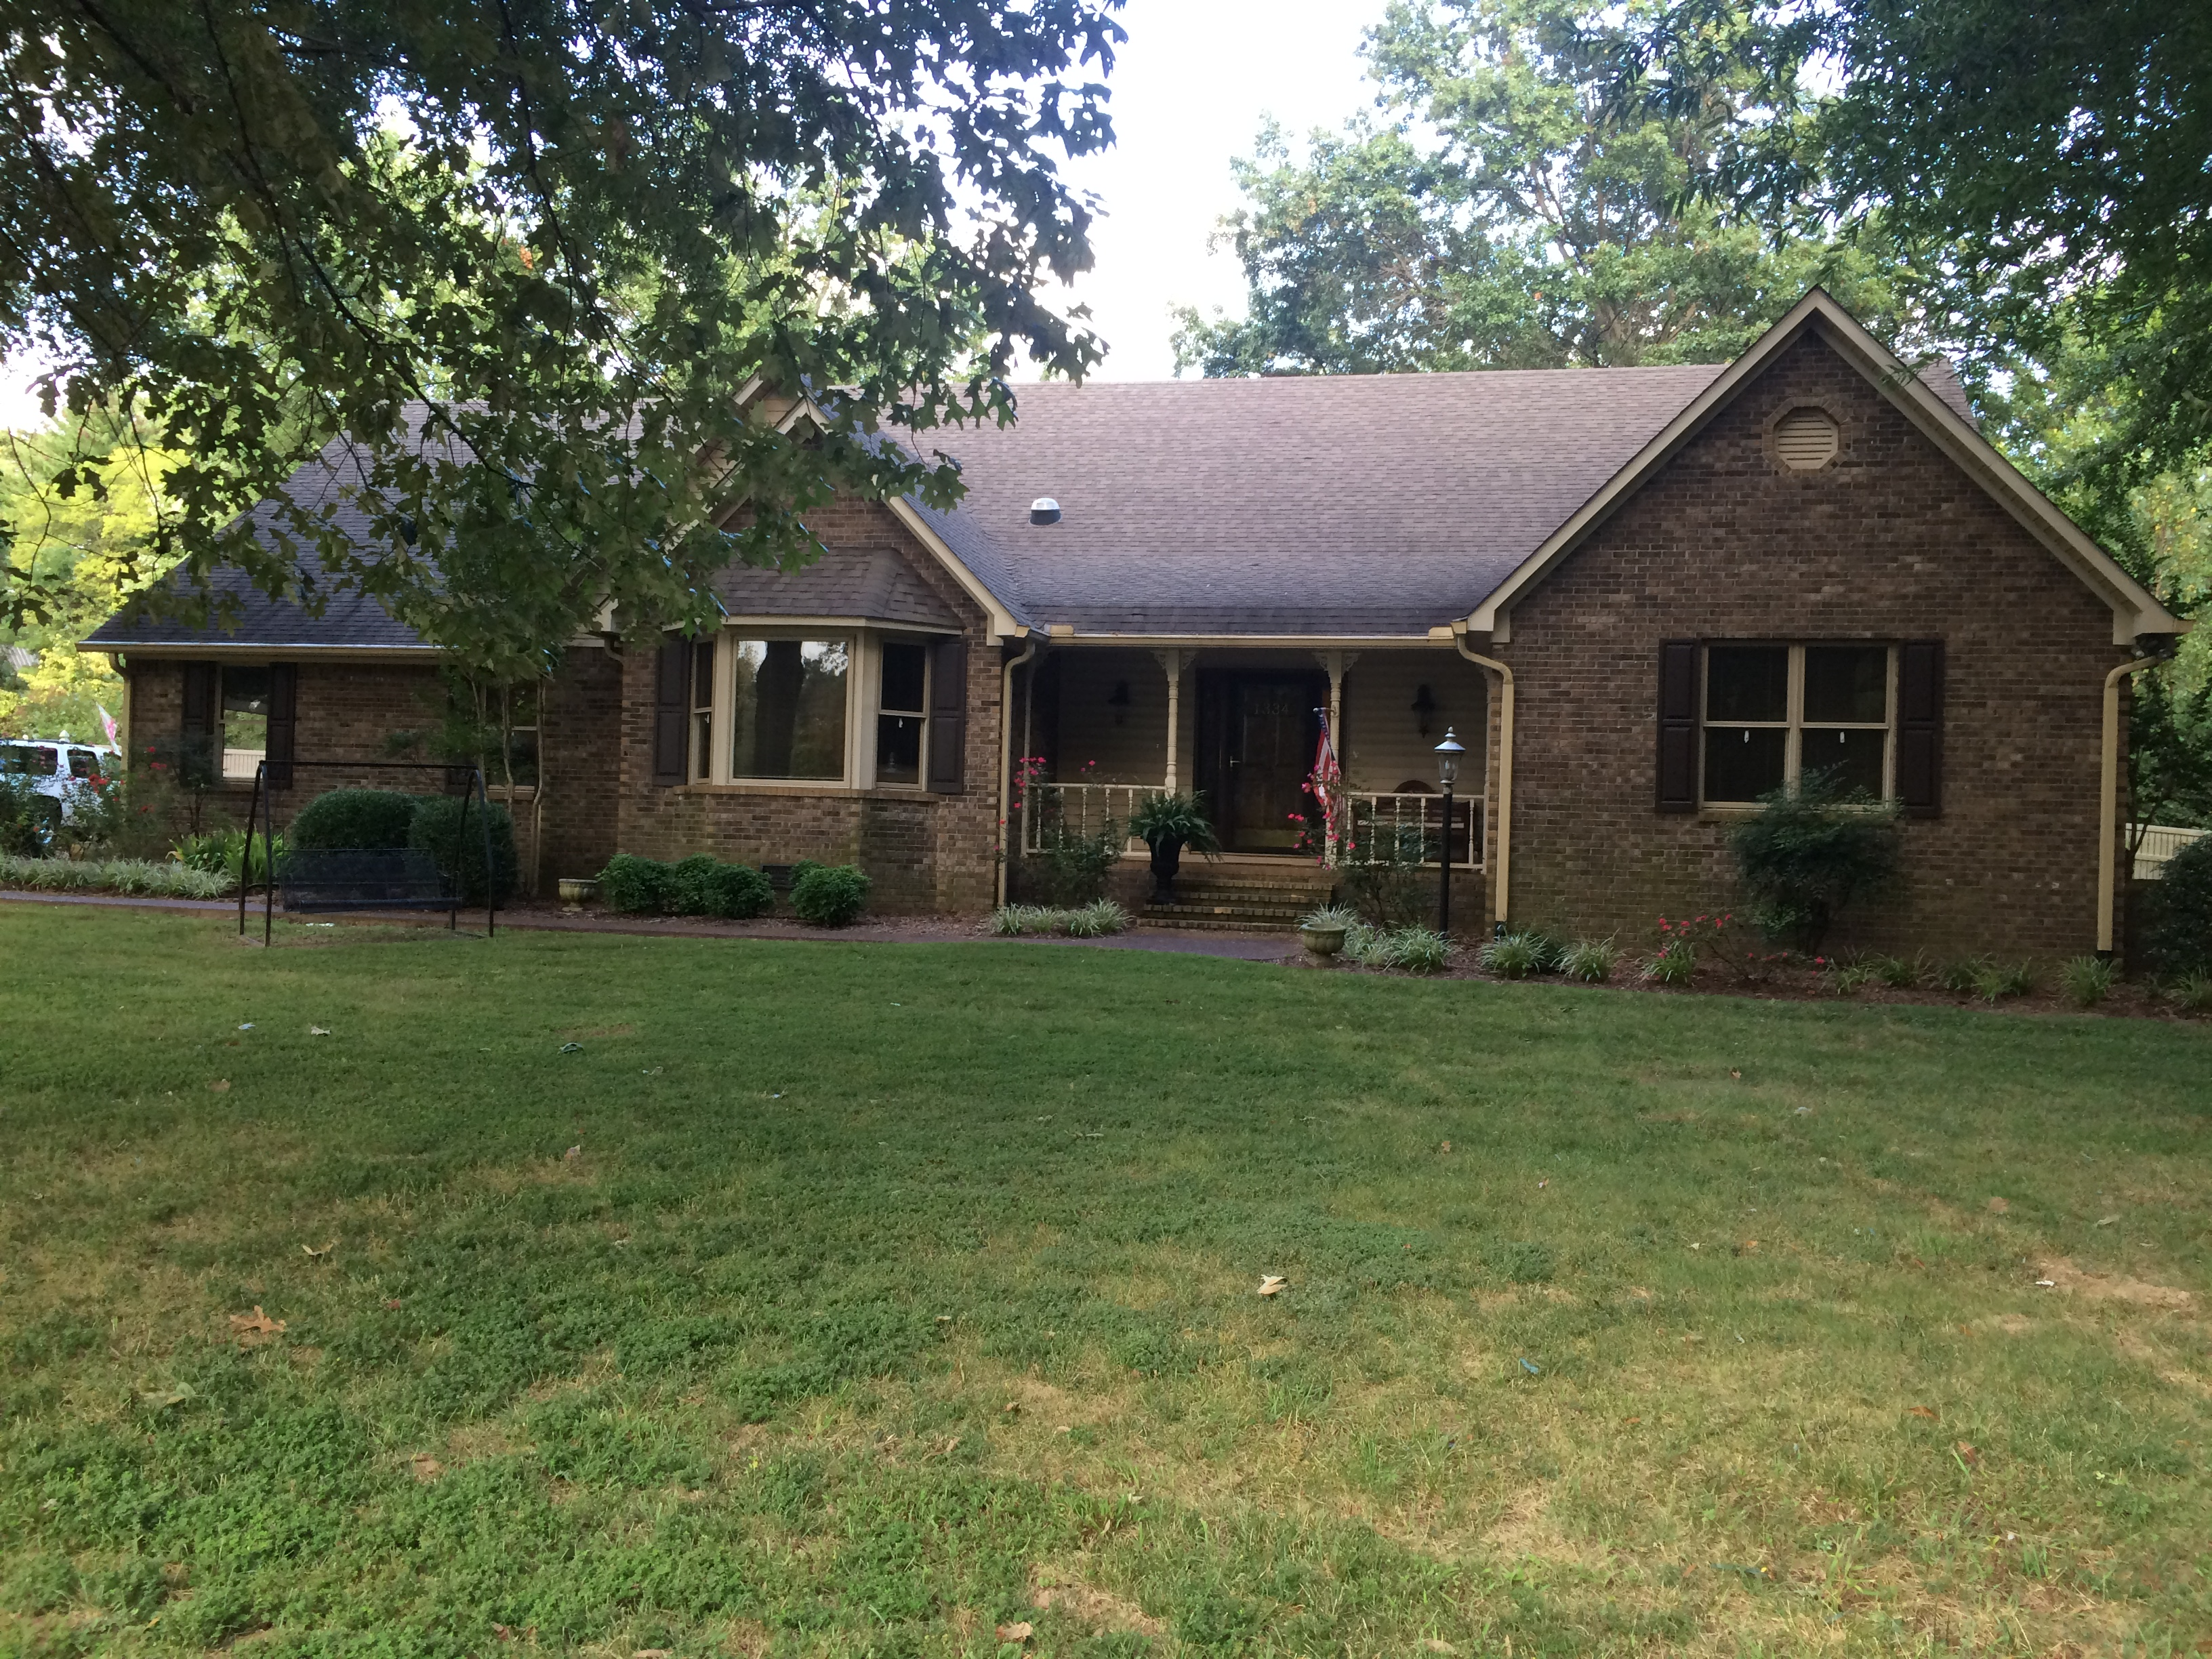 1334 Oaklawn St, Union City, Tennessee 38261